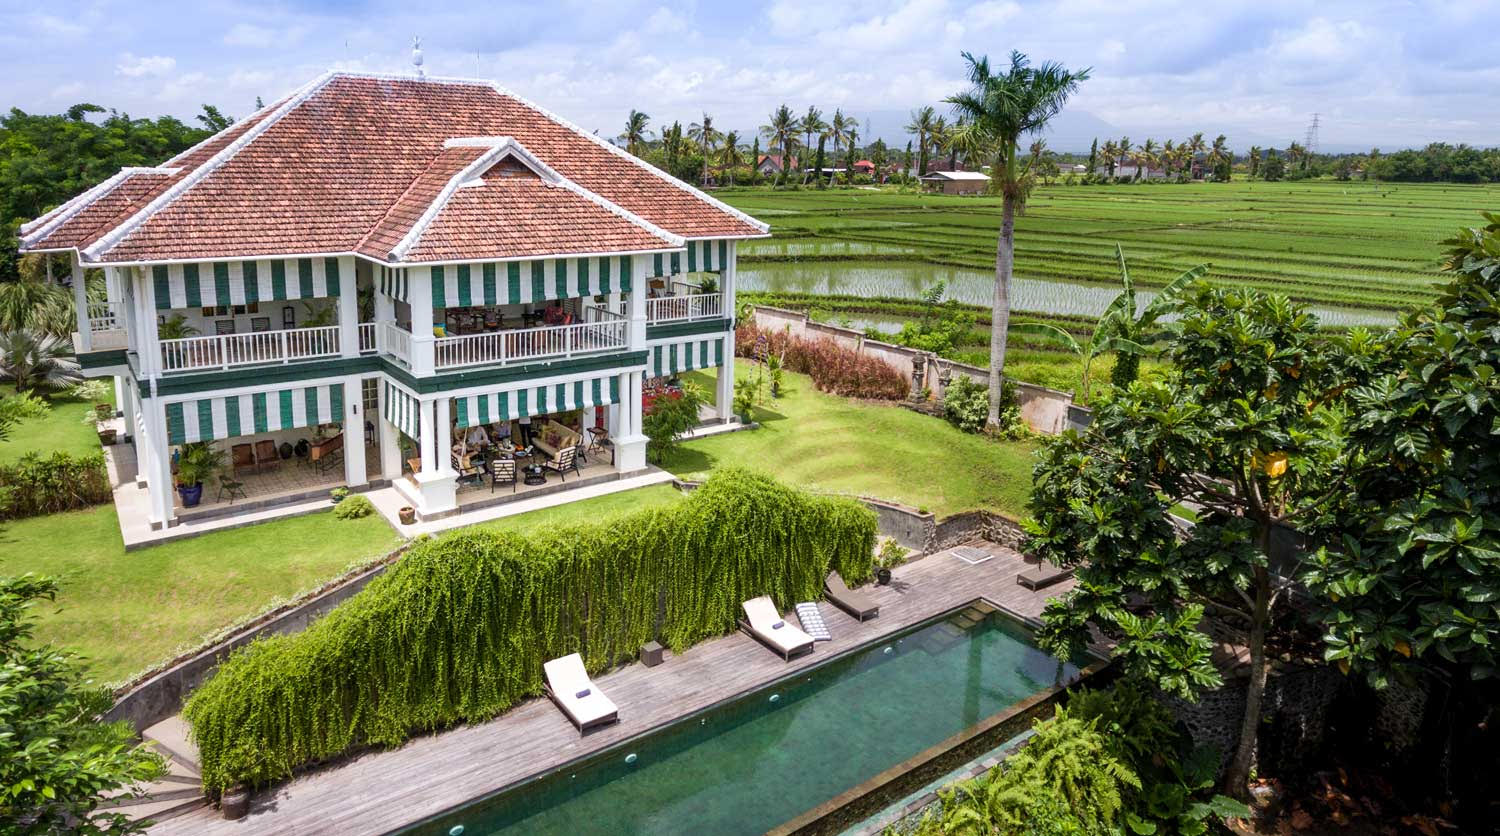 Location Maison Bali best hotels in bali, indonesia: visit to luxury guesthouse, maison simba